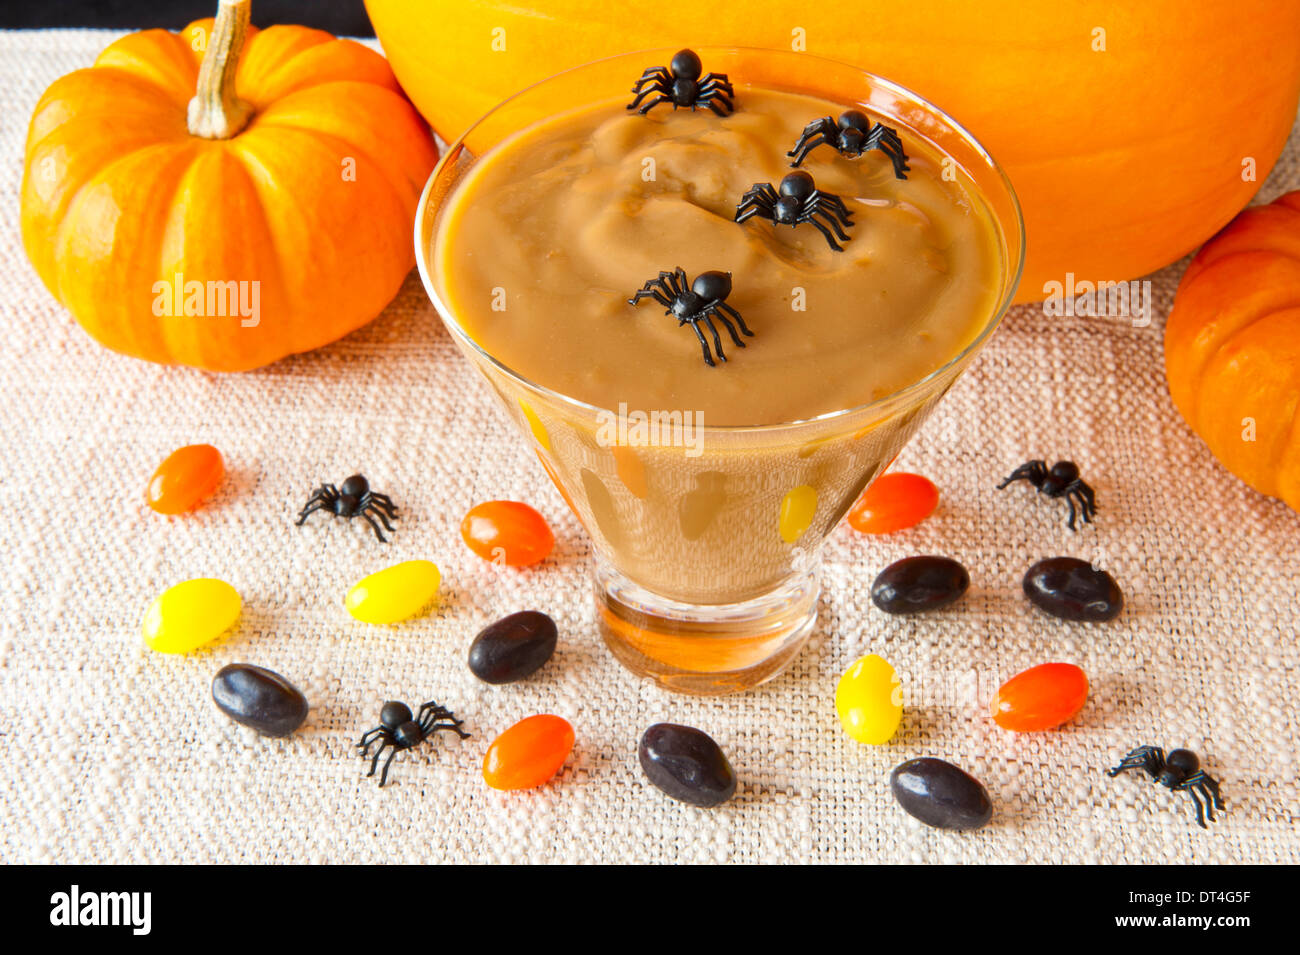 Spiders and Jellybeans decorate butterscotch pudding for Halloween - Stock Image